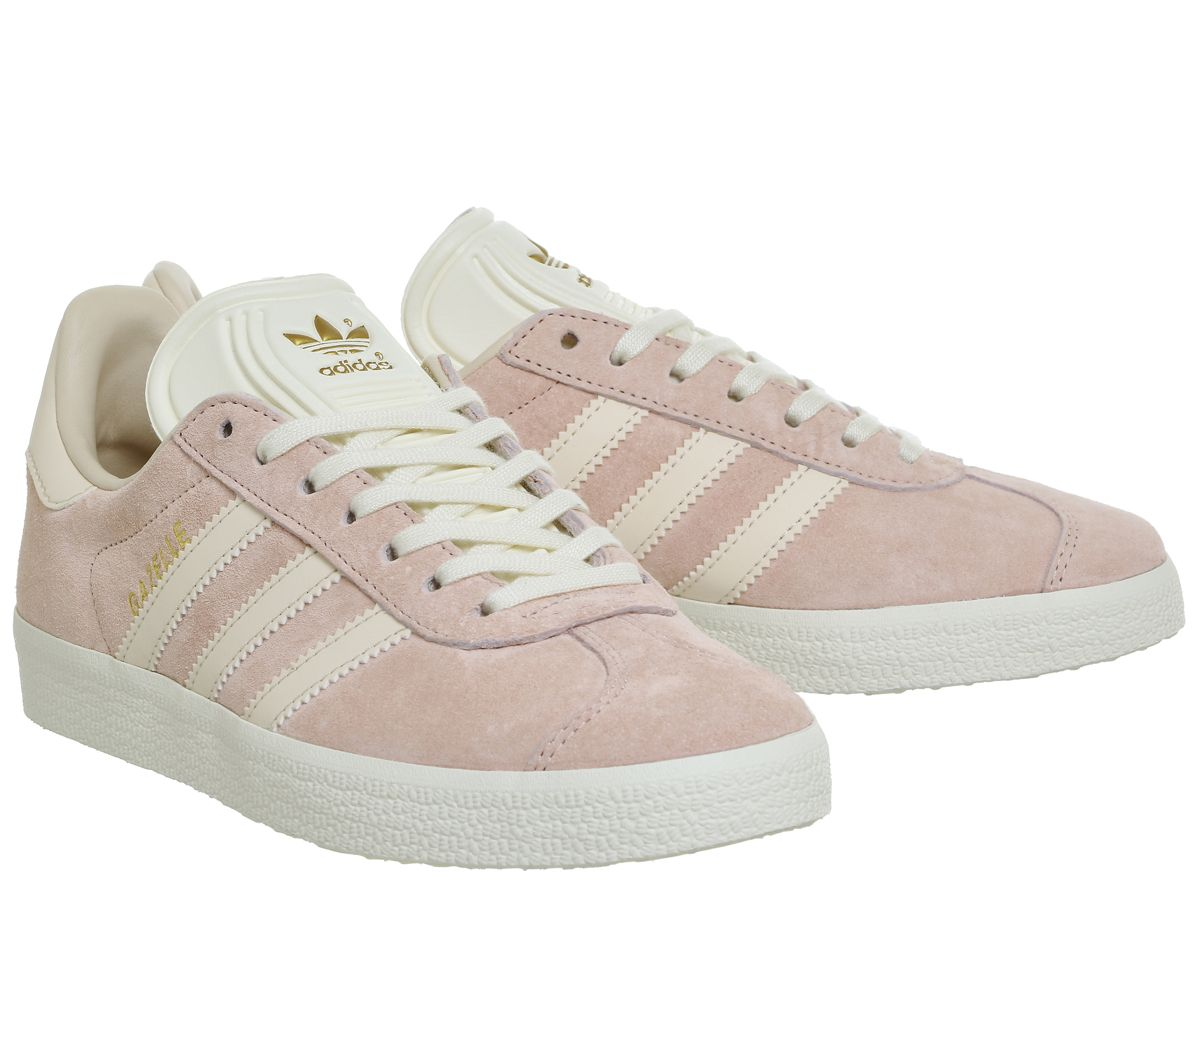 Details zu Womens Adidas Gazelle Trainers Vapour Pink Linen Cream White  Trainers Shoes